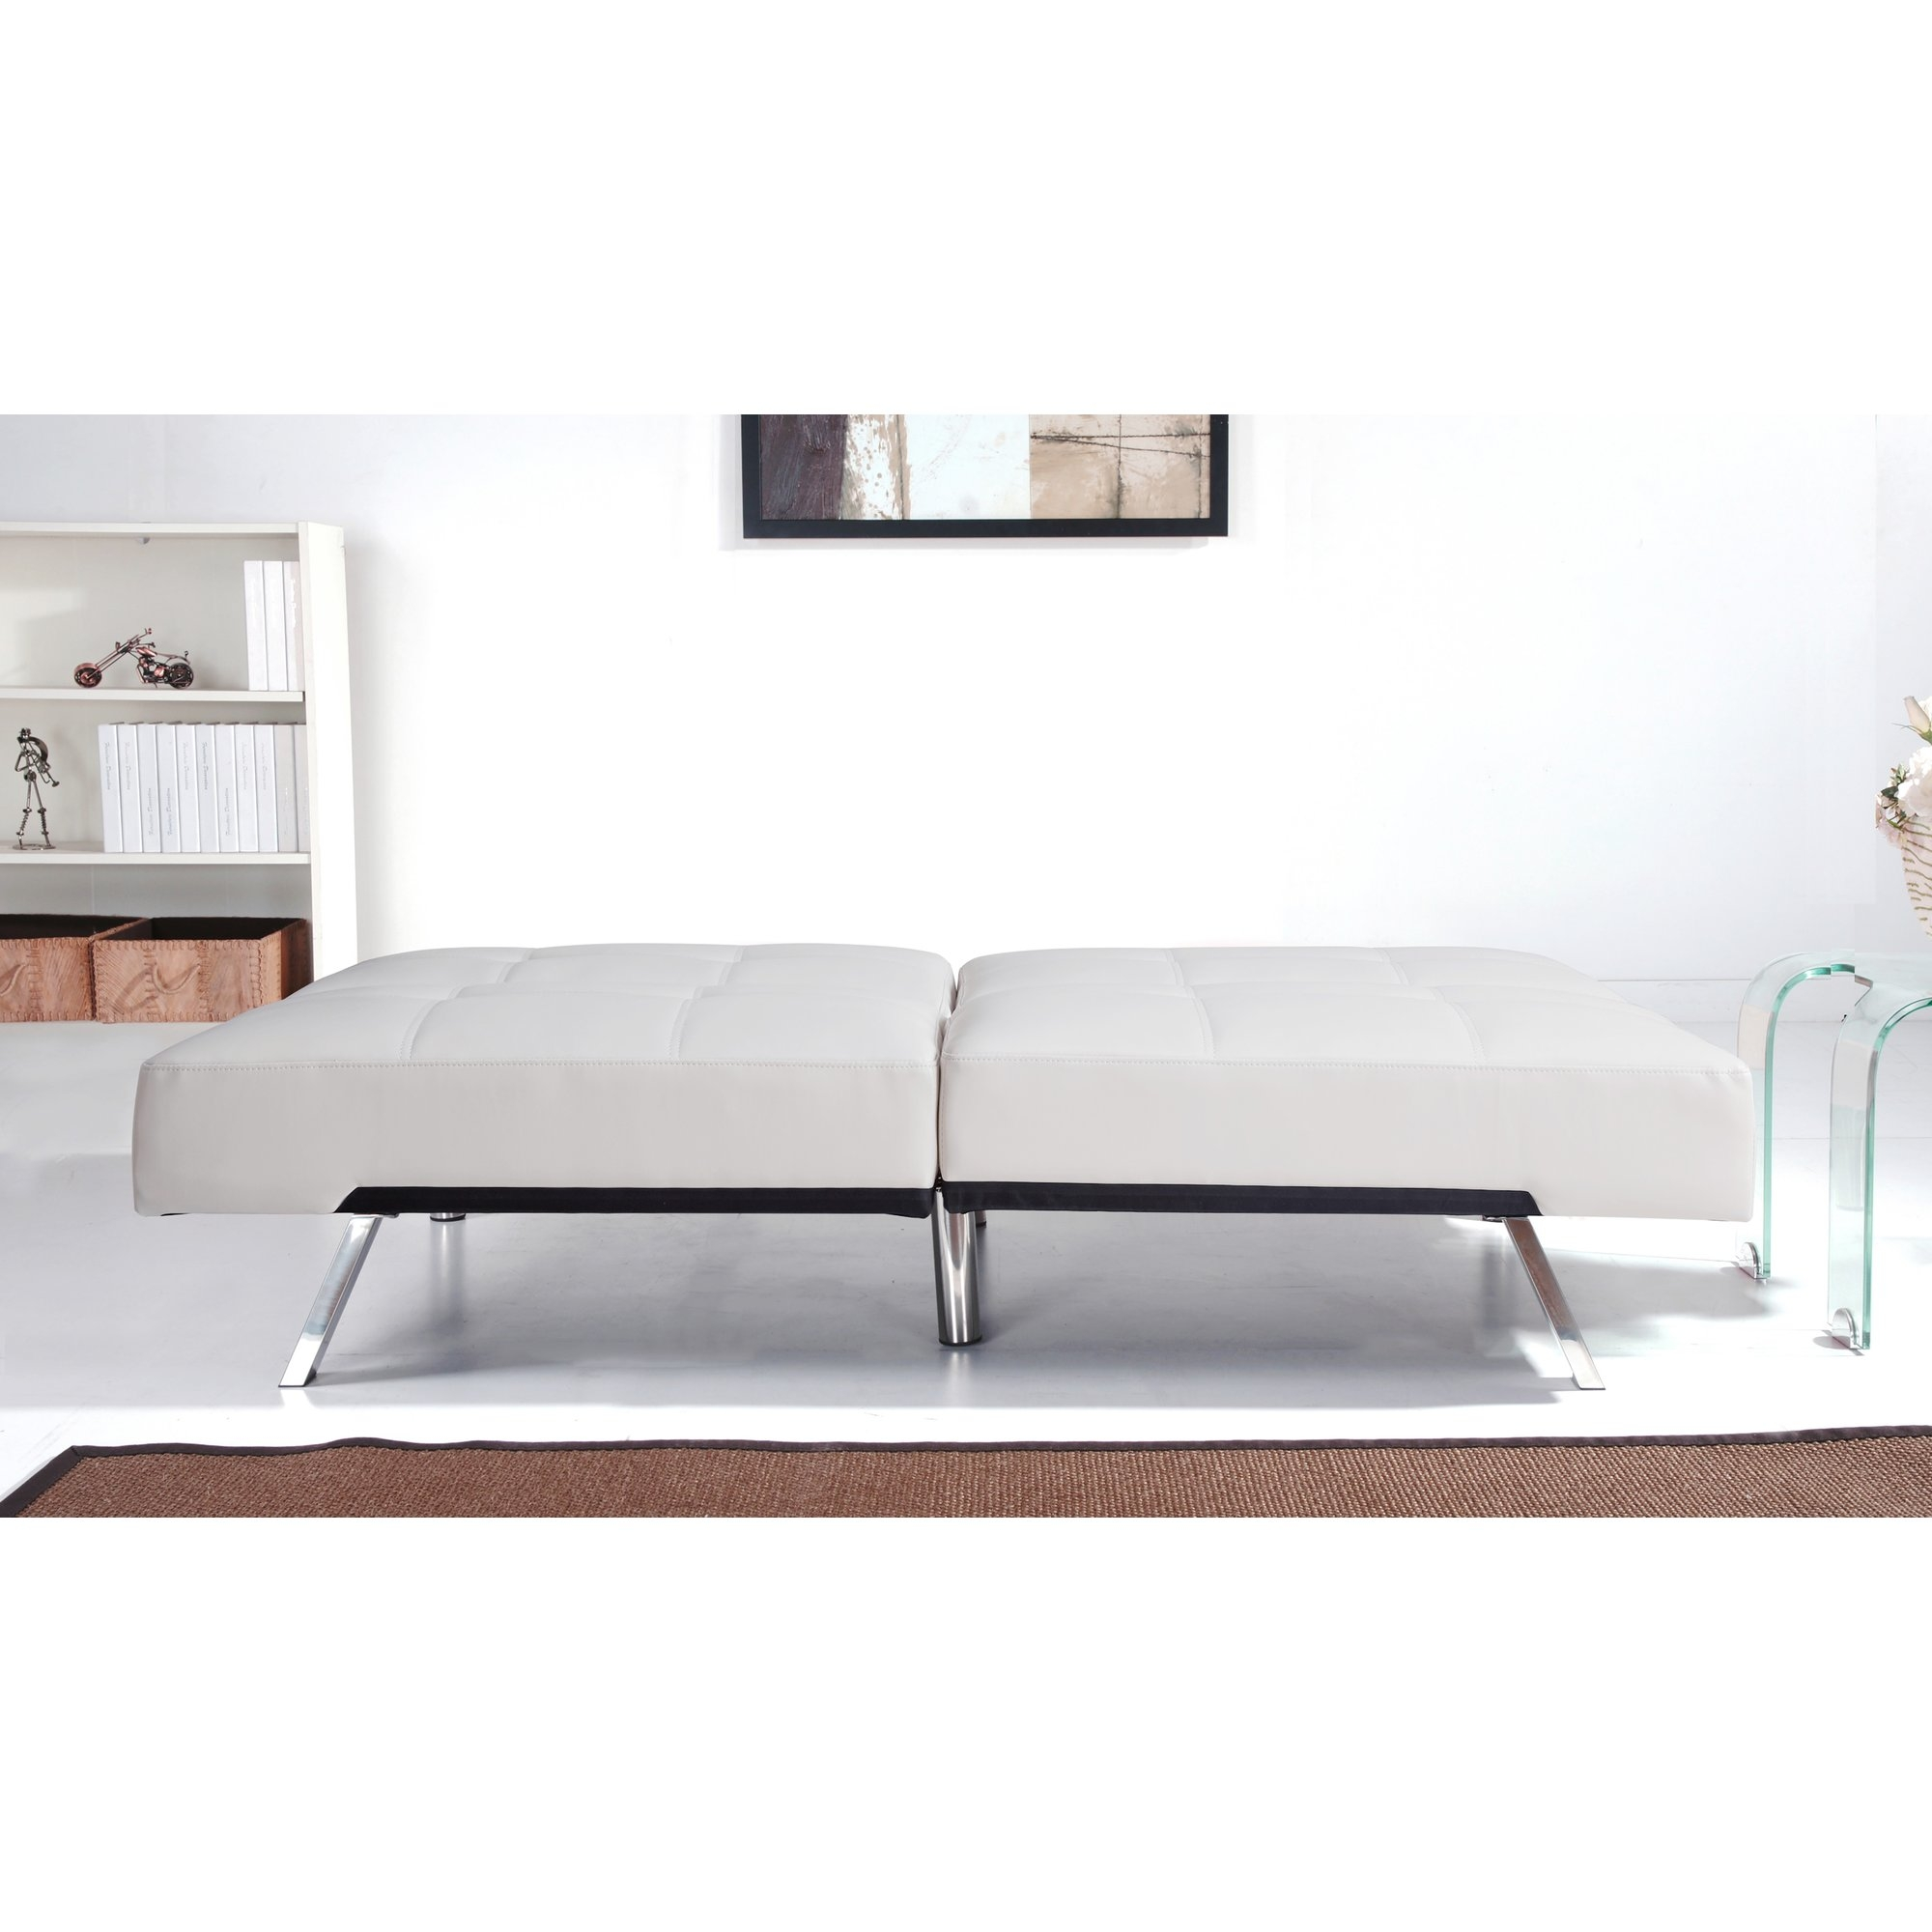 70s sofa lane home furnishings leather and loveseat from the bowden collection 12 best of 70 sleeper